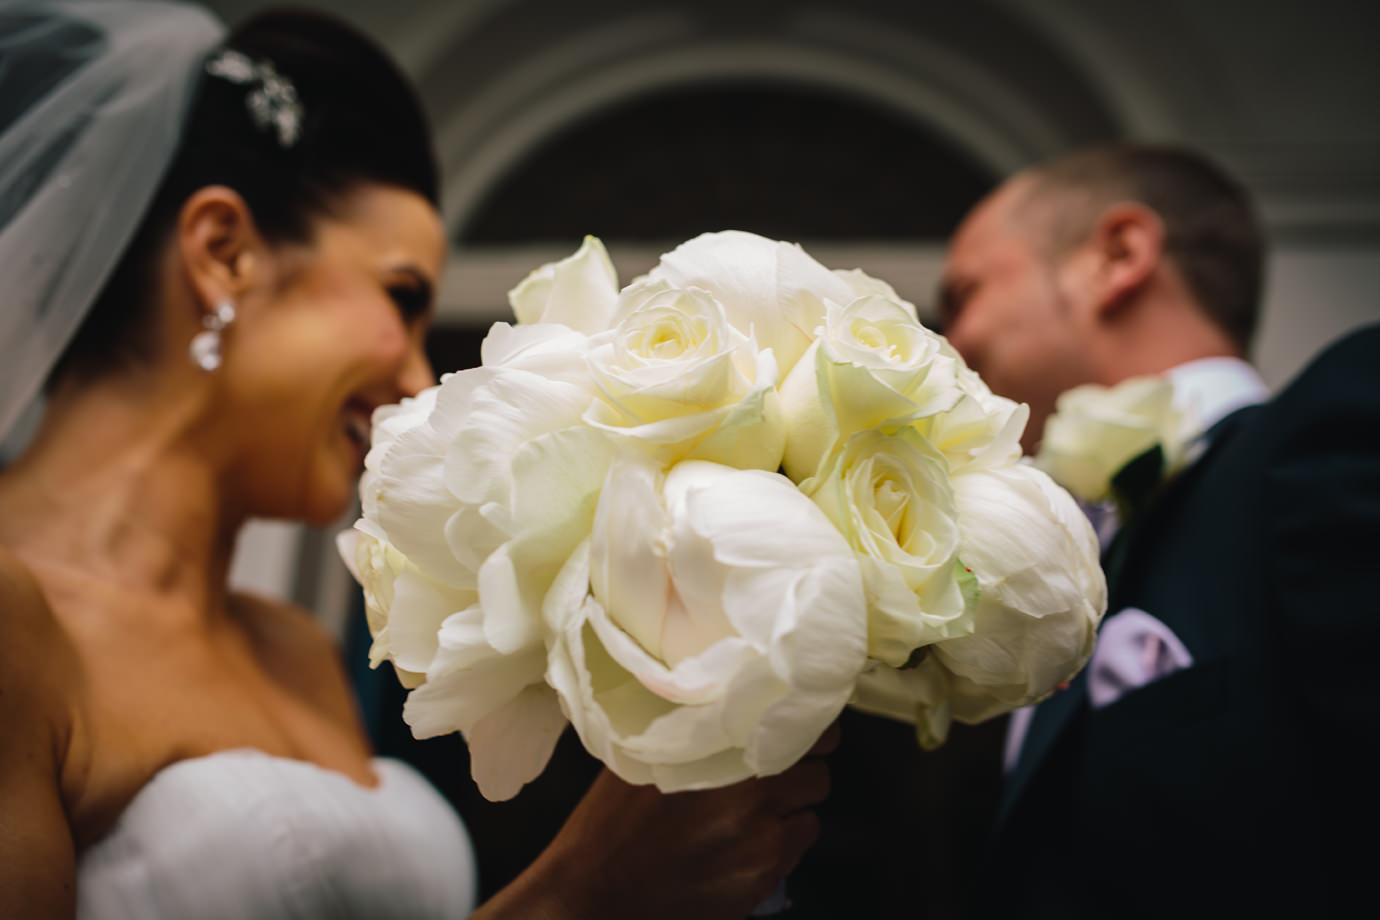 The bouquet, just married, London documentary wedding photography